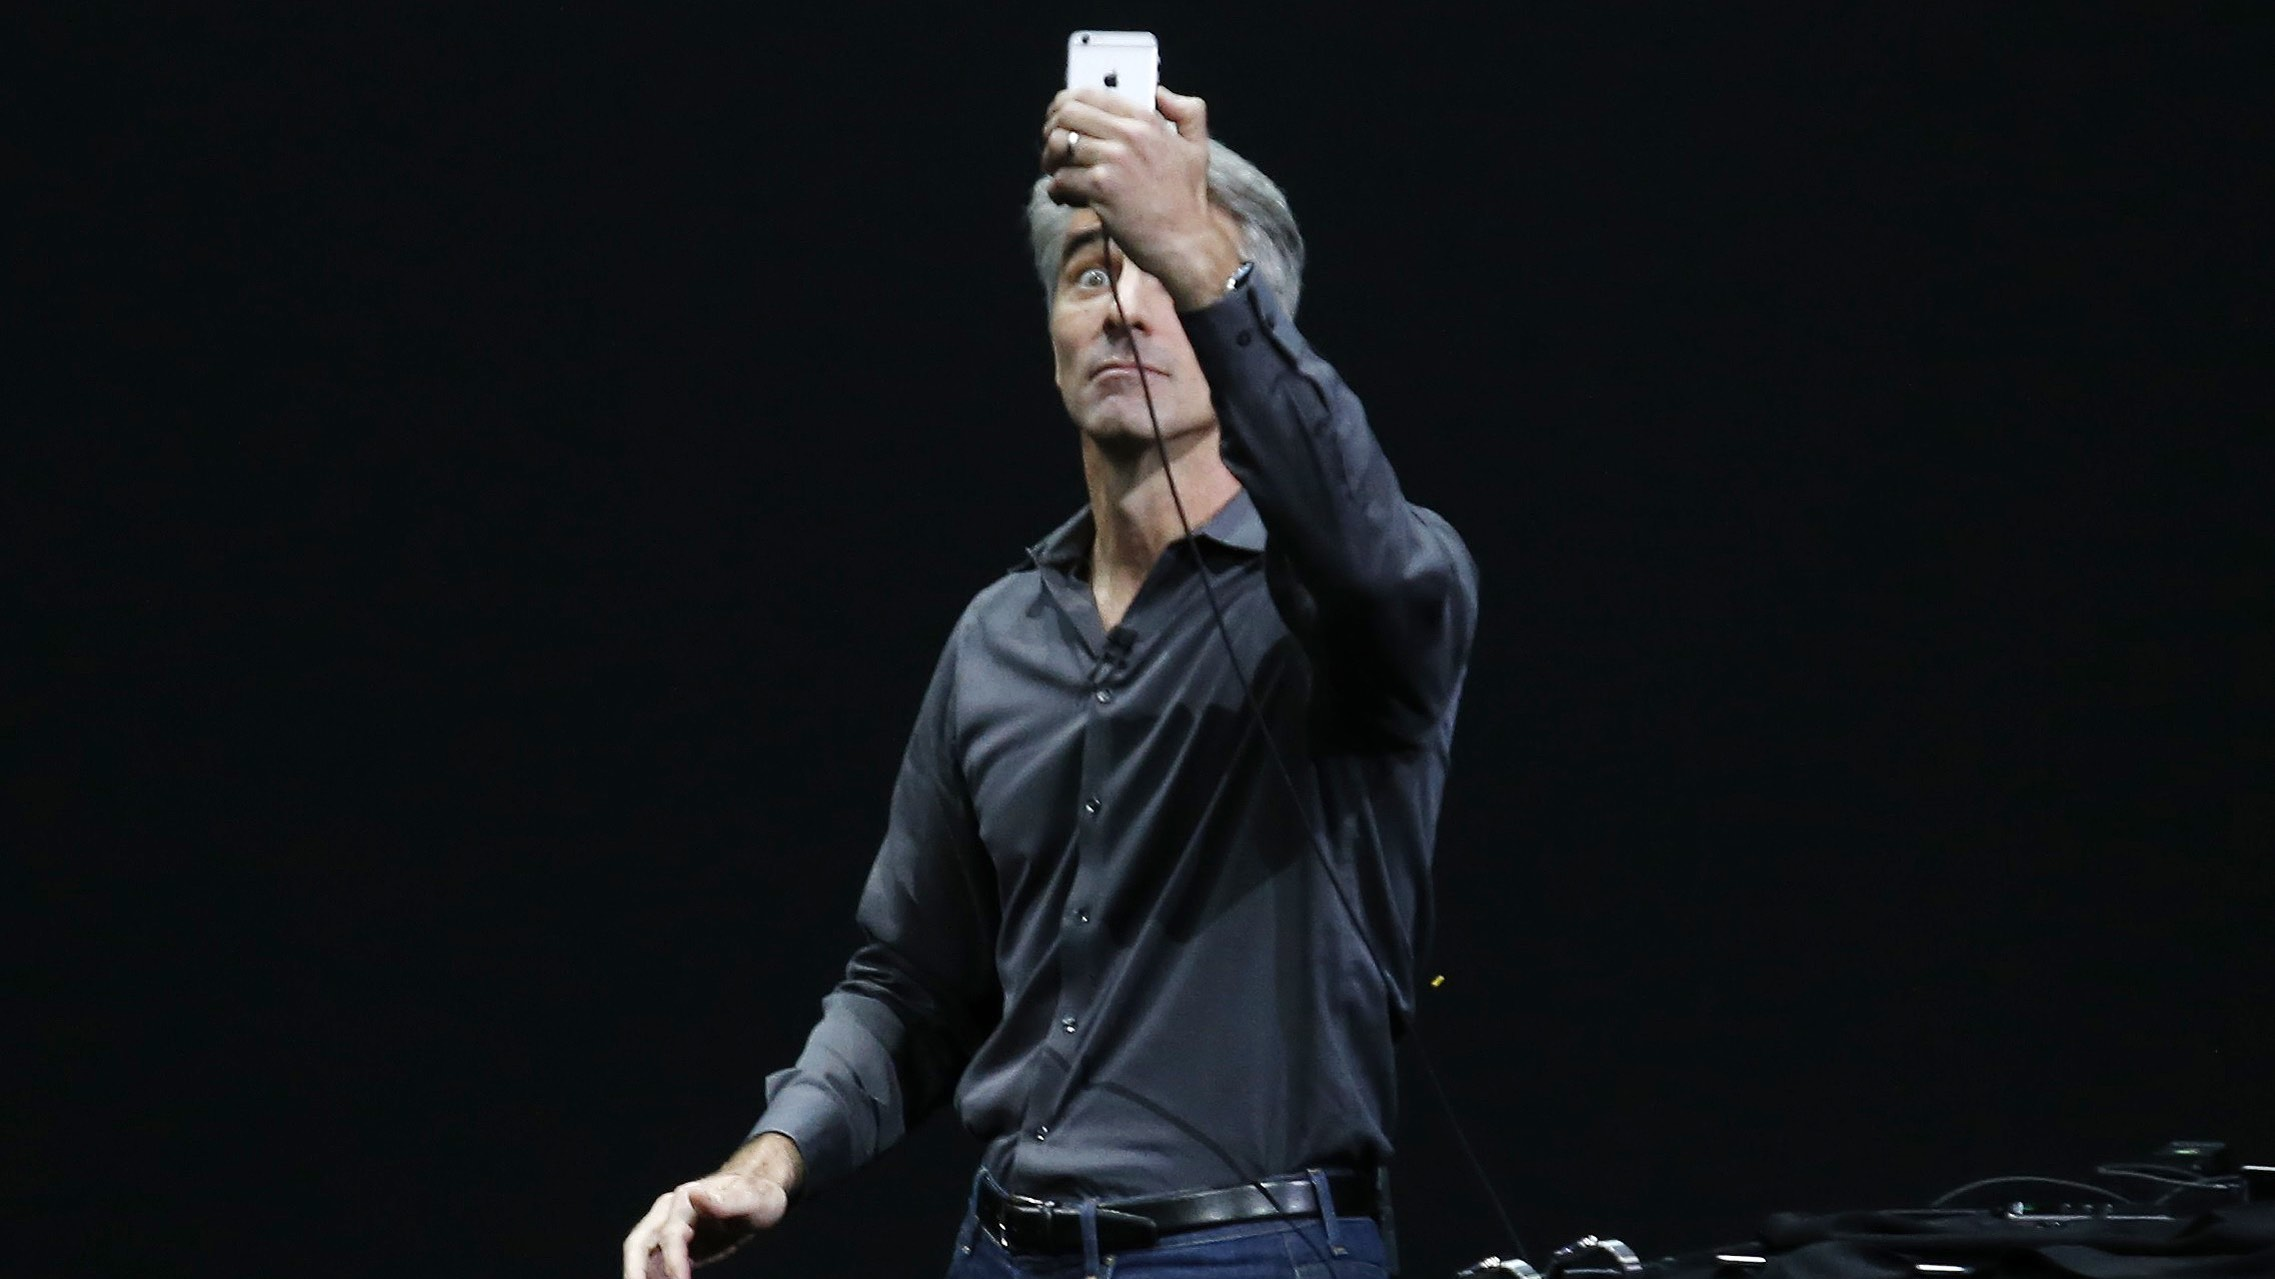 Craig Federighi, Senior Vice President of Mac Software Engineering, takes the stage to discuss the 3D Touch featured on the new iPhone 6s line during an Apple media event in San Francisco, California, September 9, 2015. Reuters/Beck Diefenbach